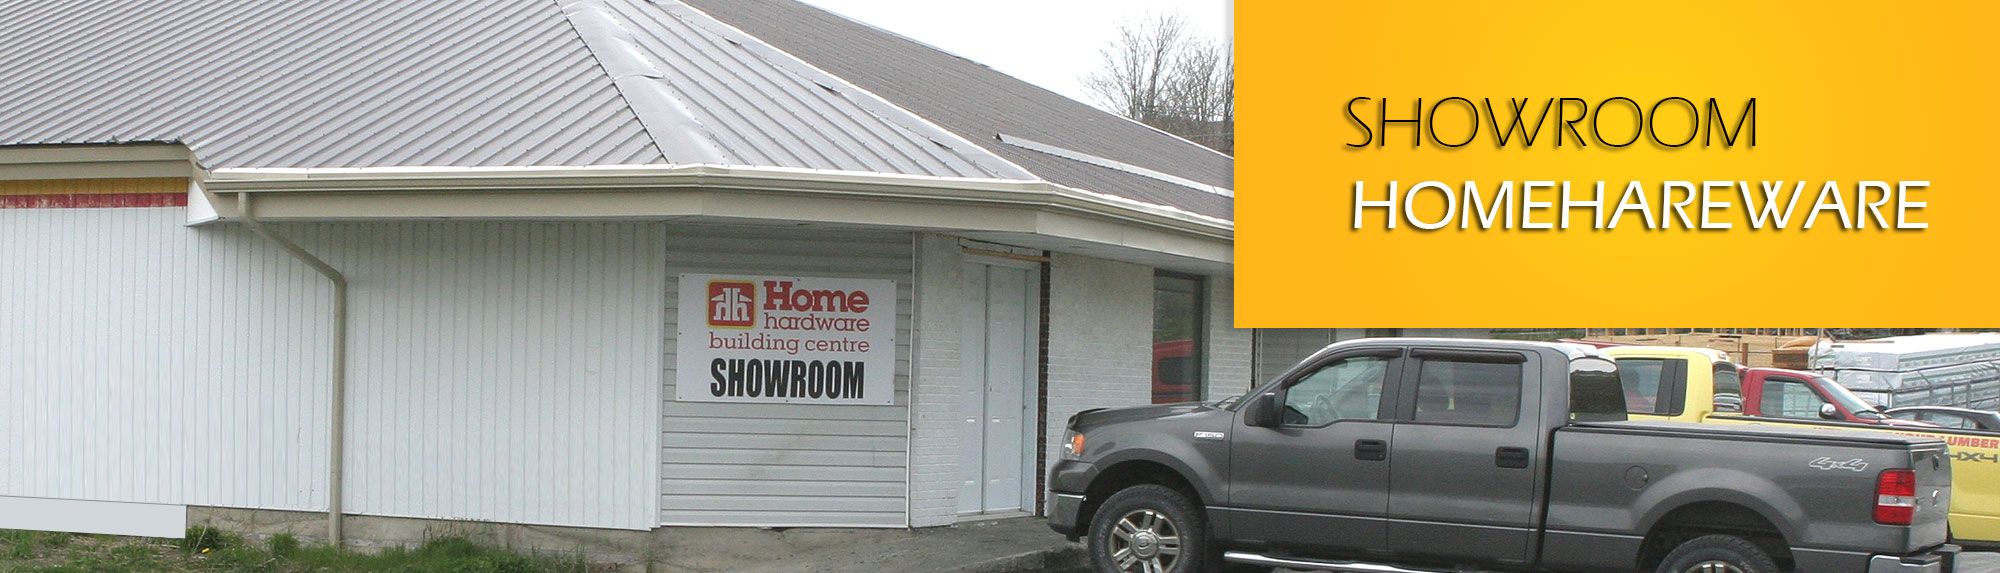 Showroom Home Hardware